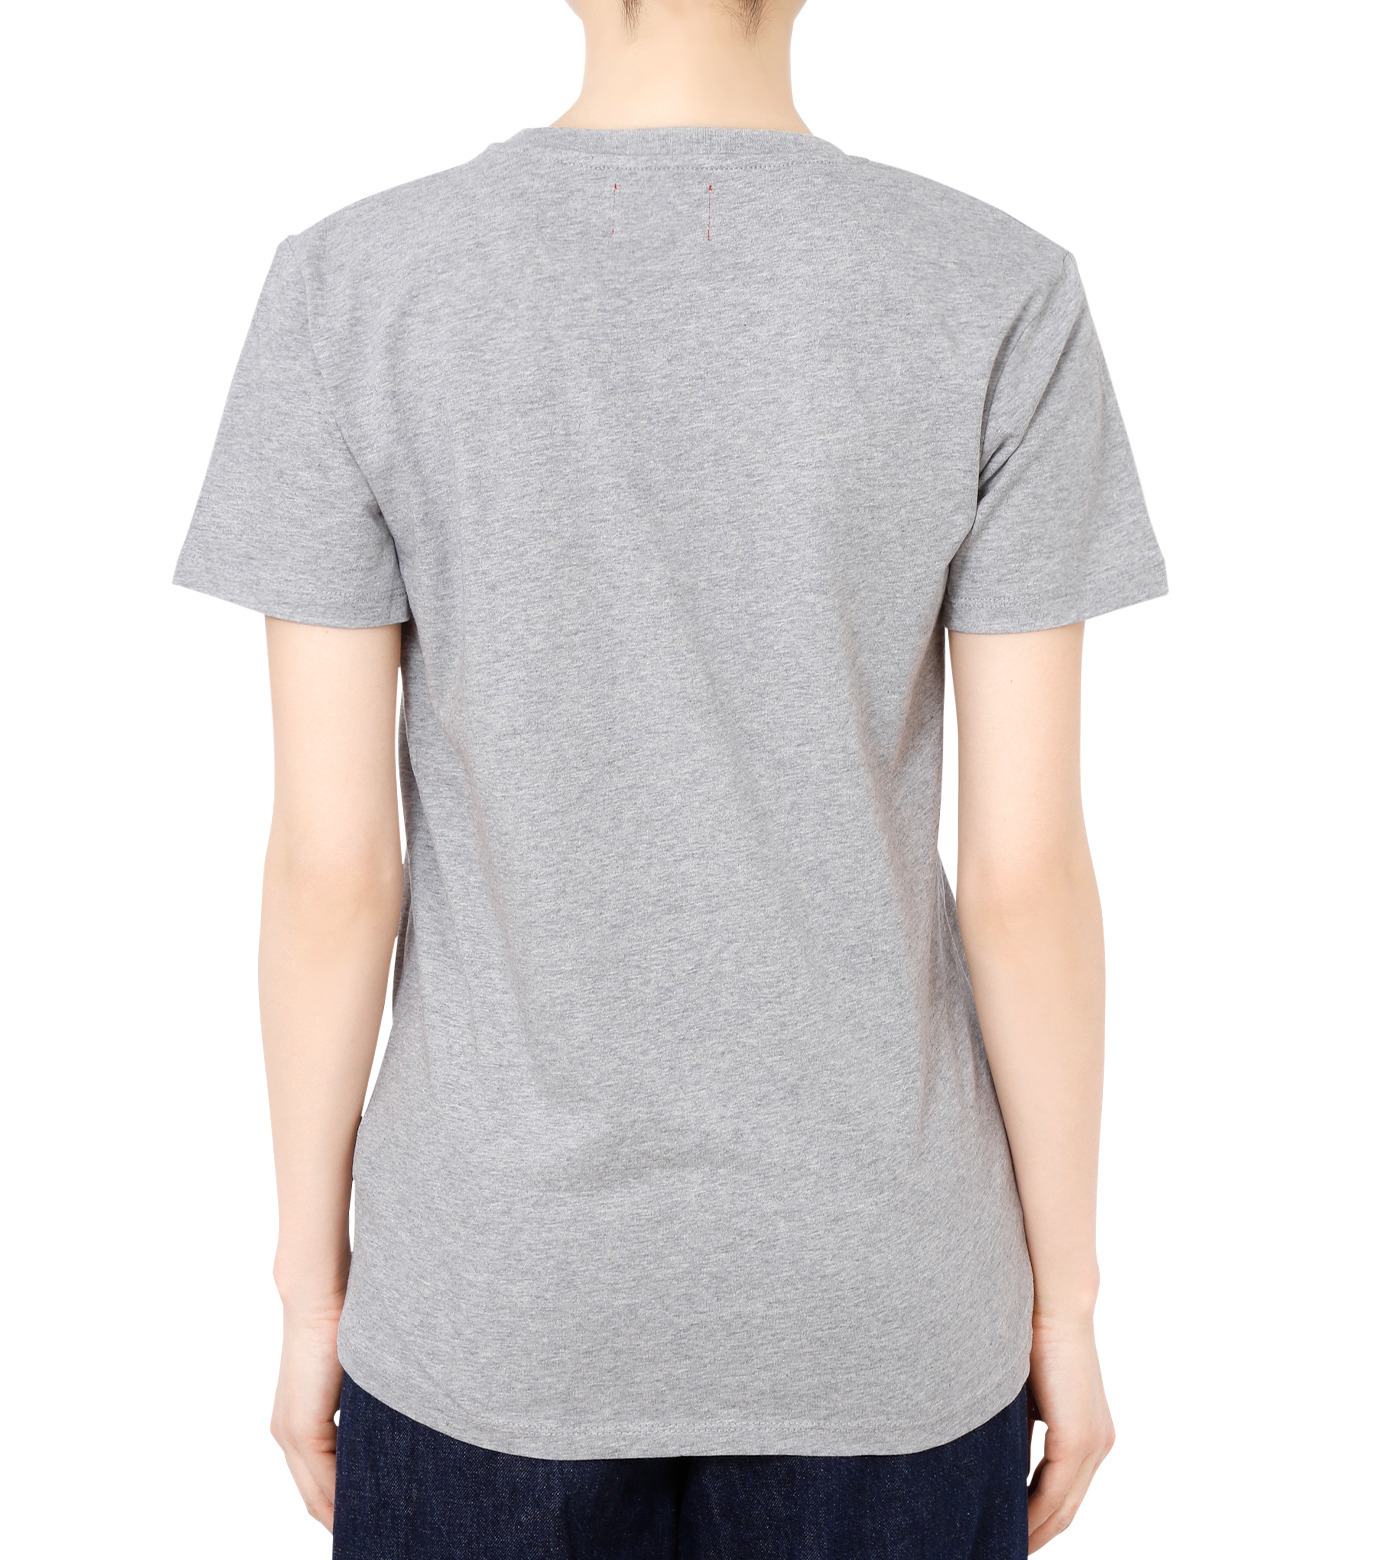 No One(ノーワン)のBELLEVILLE HILLS Logo T-shirt-GRAY(カットソー/cut and sewn)-SS930G-11 拡大詳細画像2